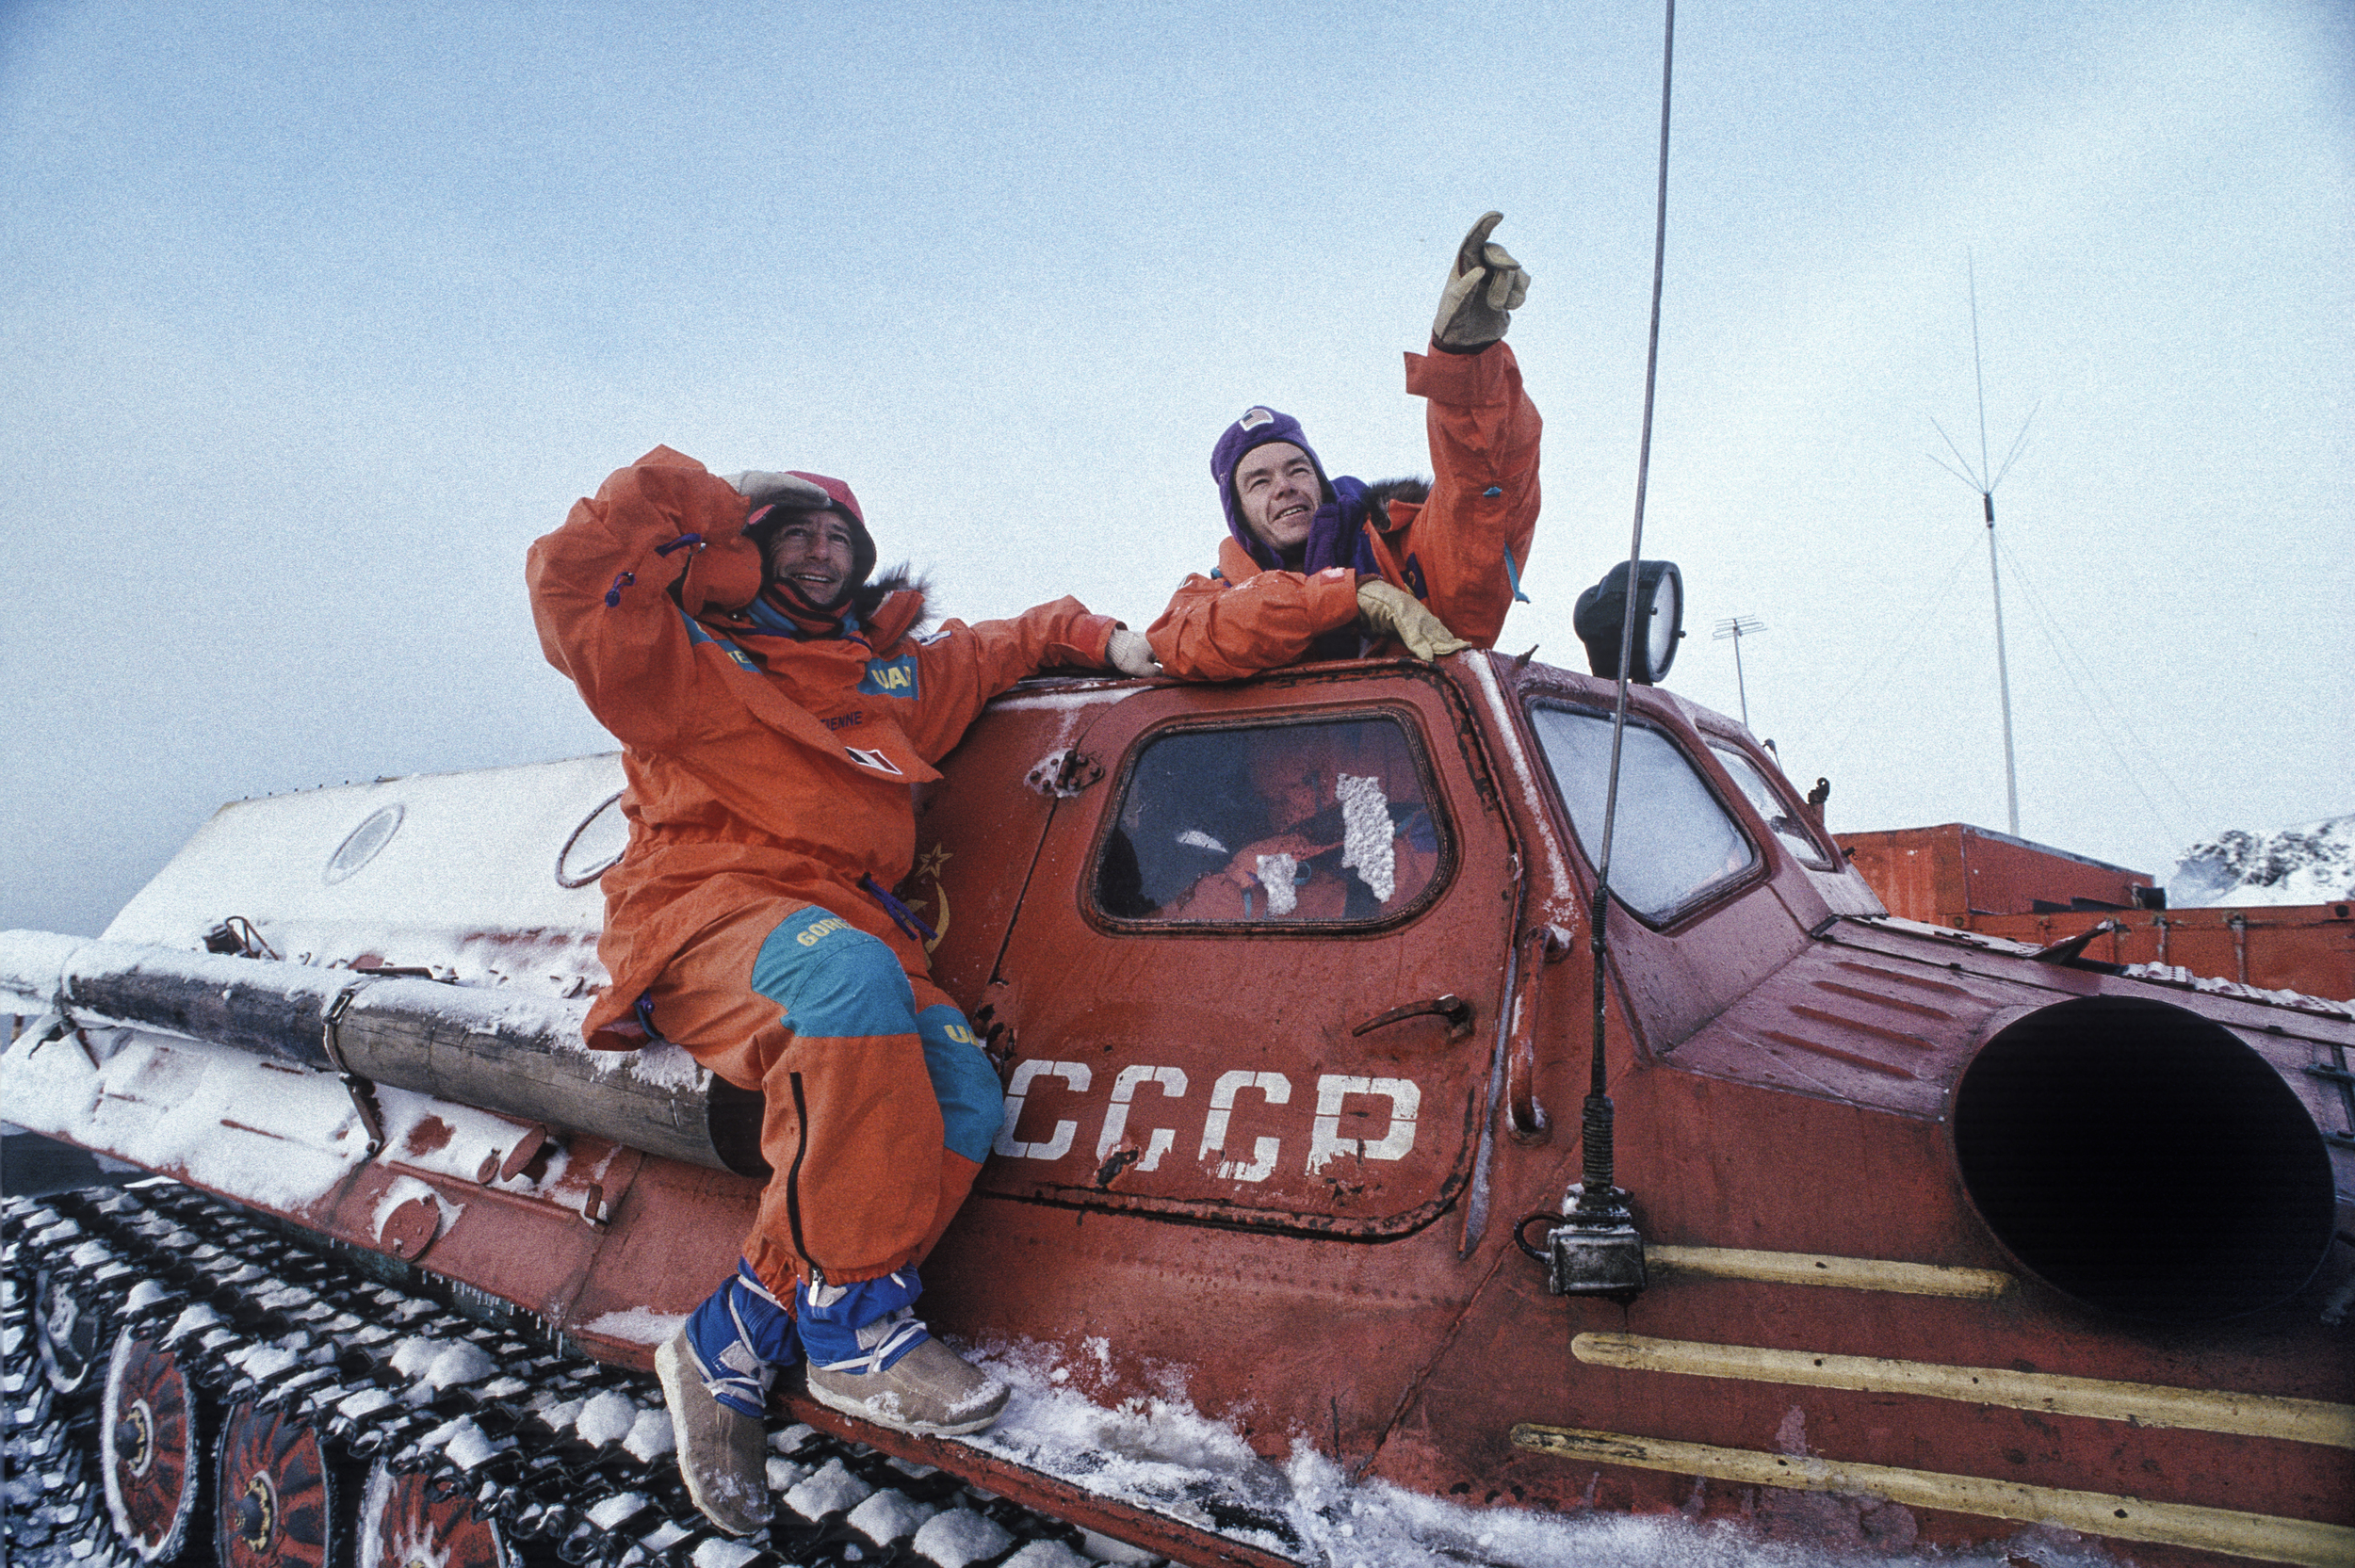 Jean-Louis Etienne and Will Steger riding in the ancient Soviet tanks that were their transport on King George Island. ©Trans-Antarctica photo by Per Breiehagen